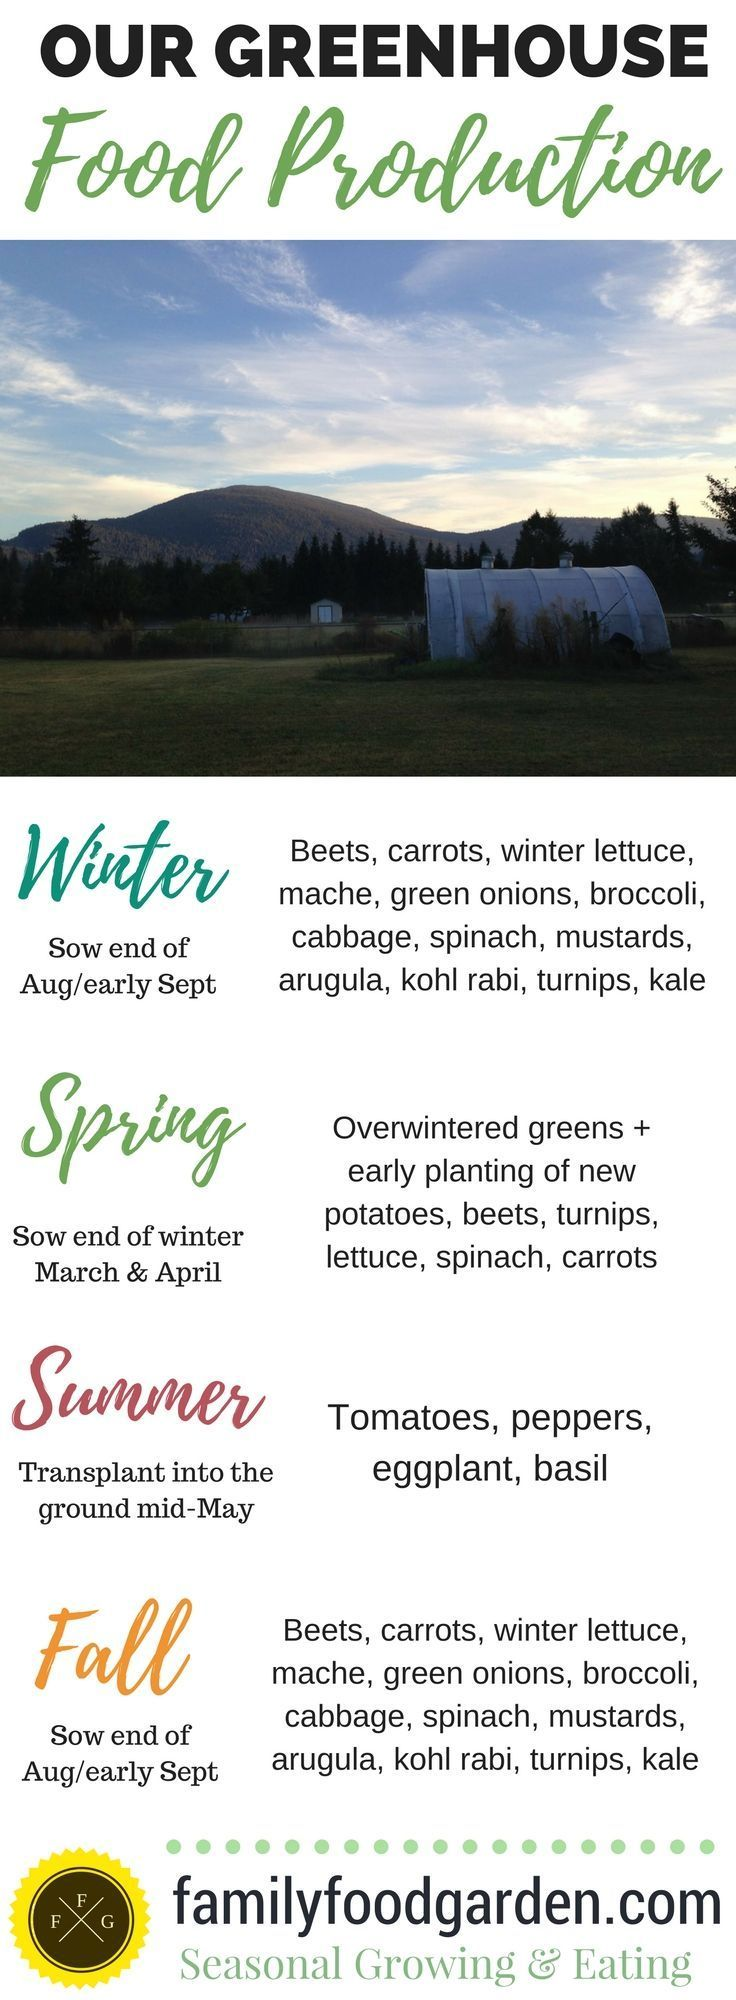 Growing a vegetable garden year-round in a greenhouse